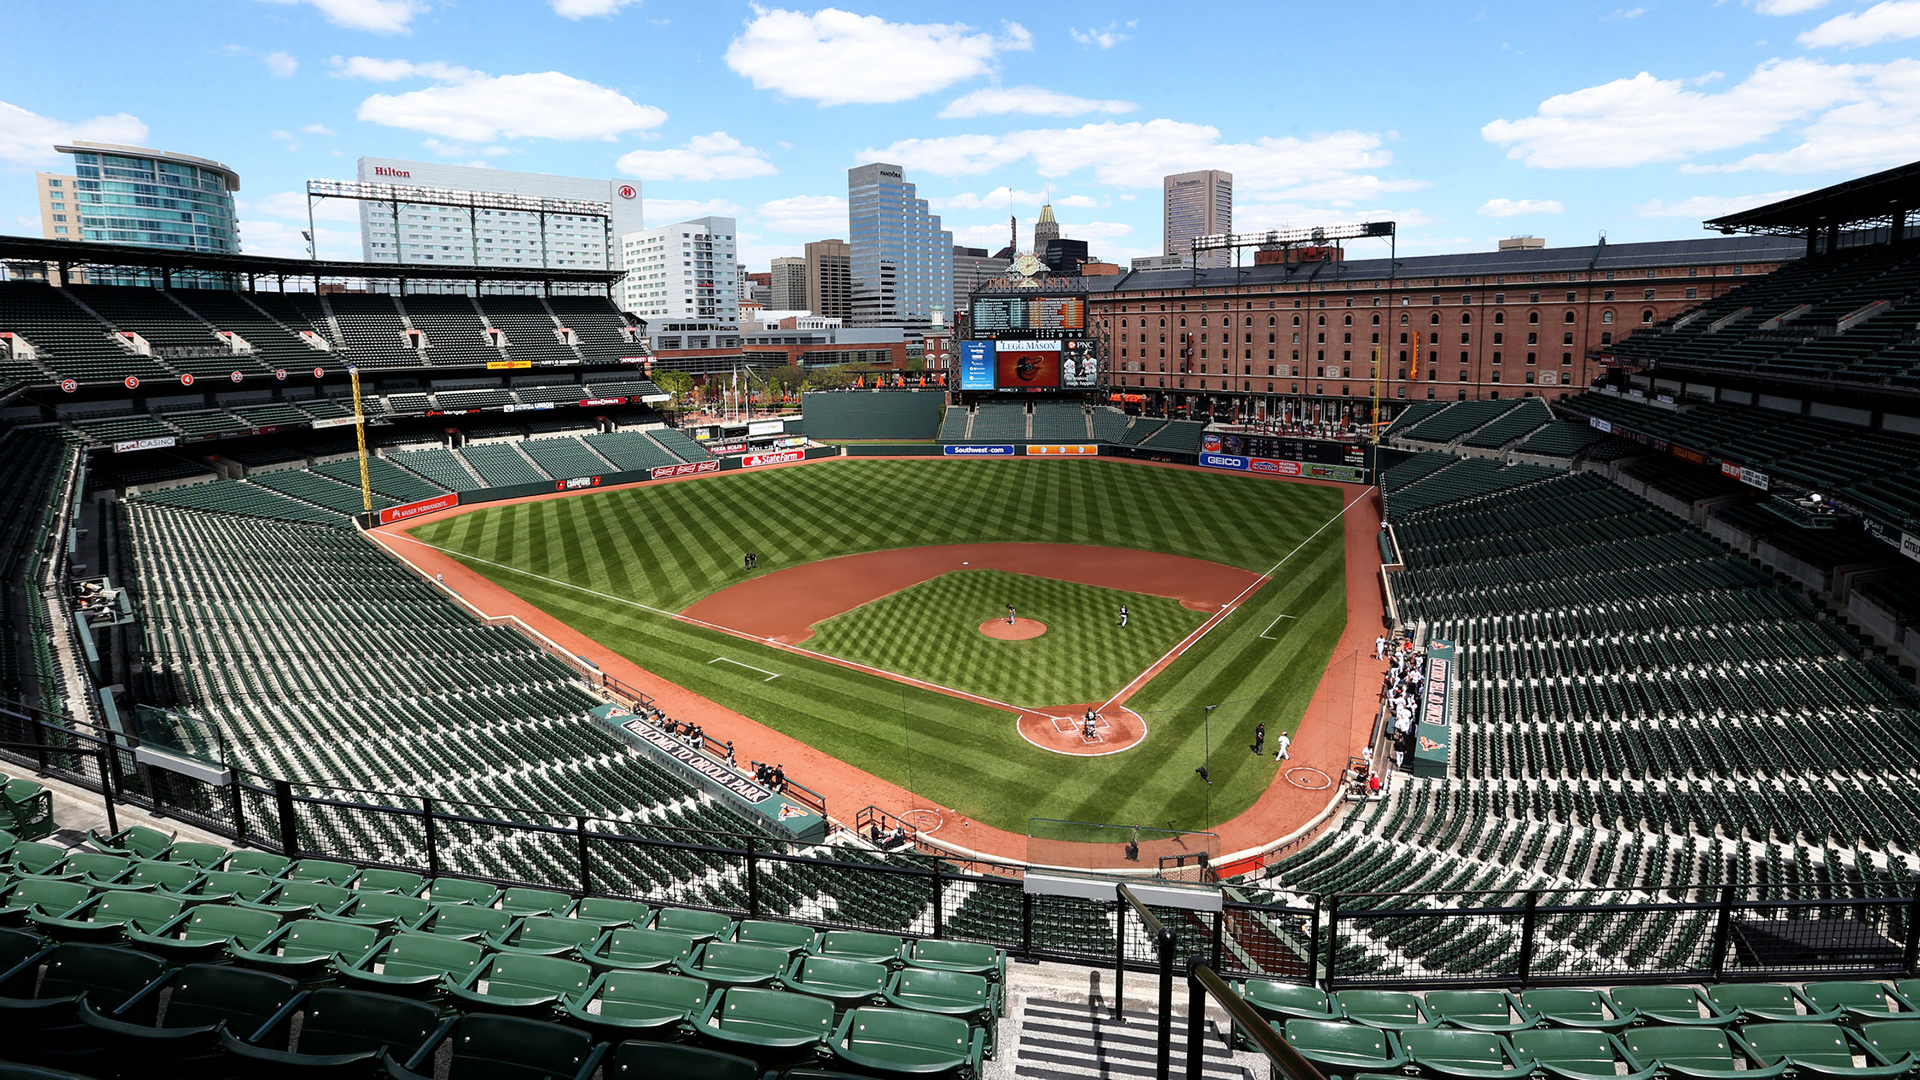 Oriole Park at Camden Yards Ballpark. Virtual background to use on Zoom, Microsoft Teams, Skype, Google Meet, WebEx or any other compatible app.